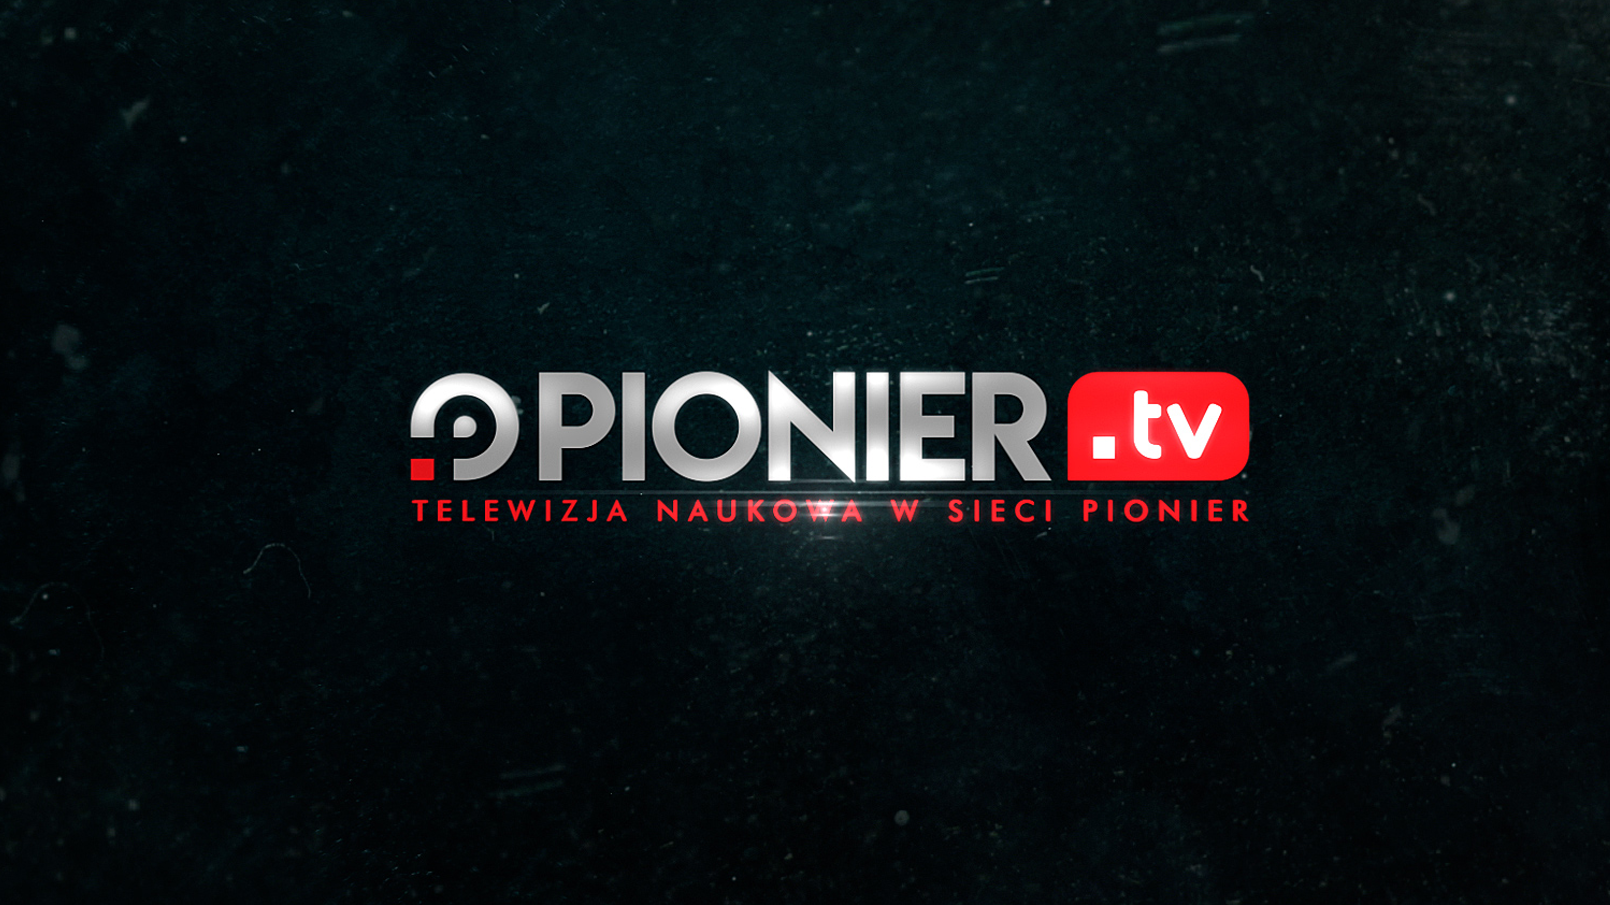 The 10th season of Pionier.TV scientific cycles has started